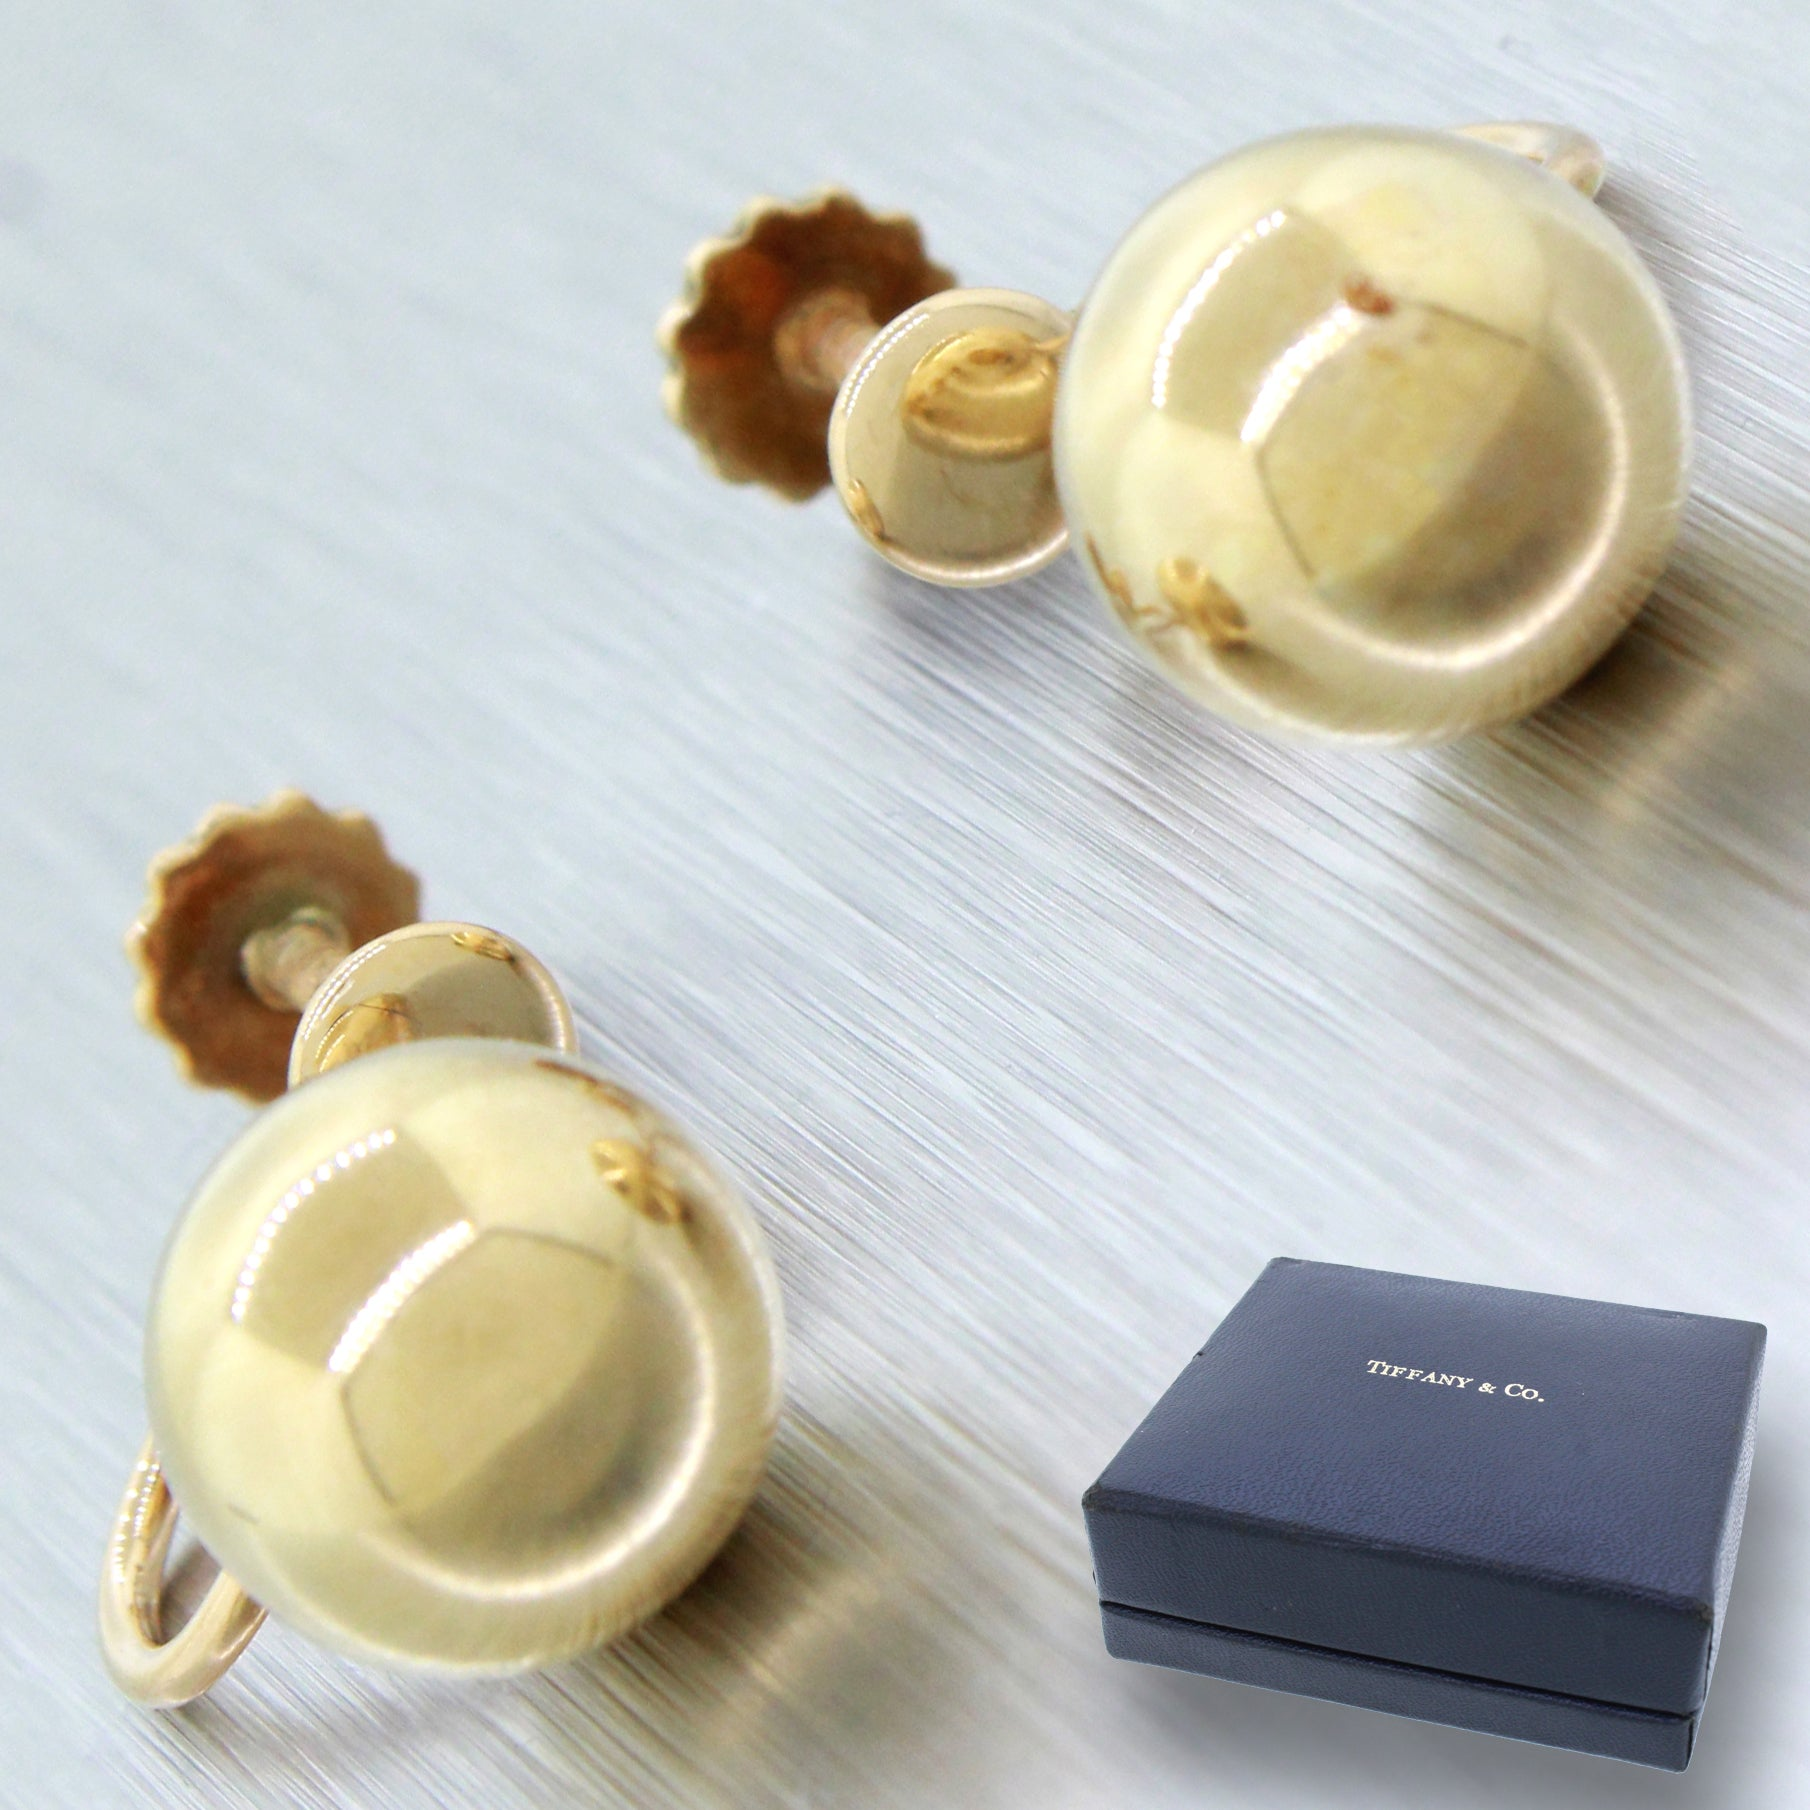 Vintage Tiffany & Co. 14k Solid Yellow Gold Ball Earrings with Box